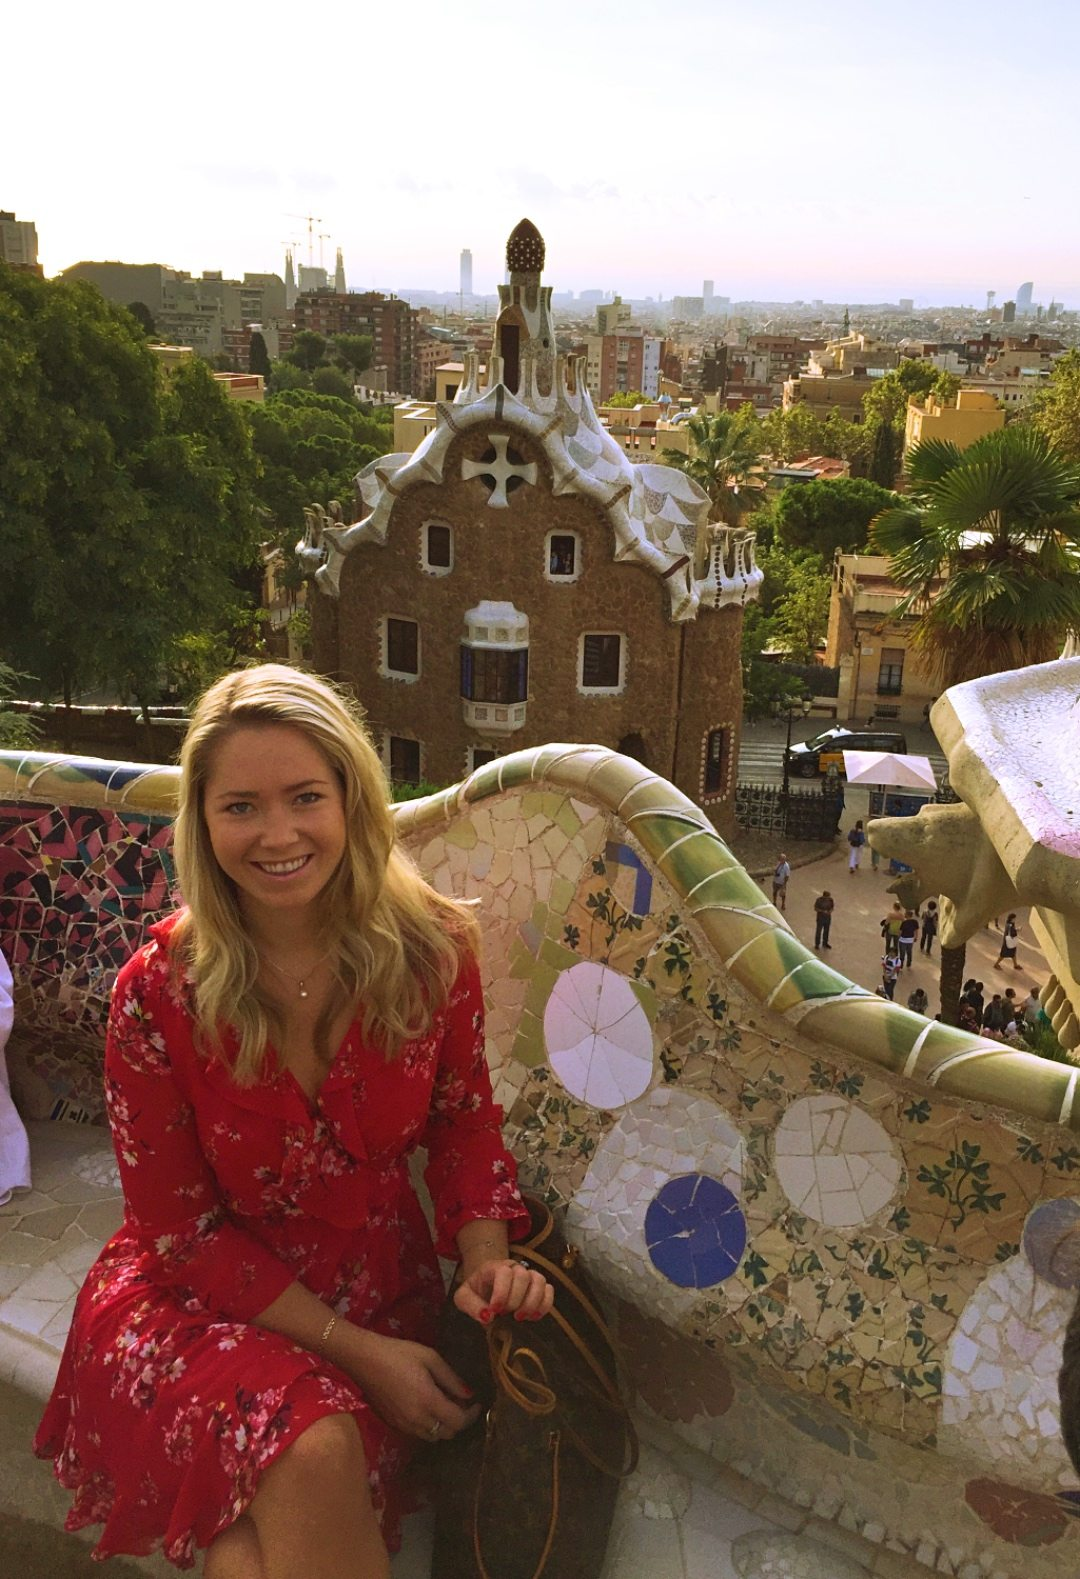 A picture of me sitting down to rest at Park Guell